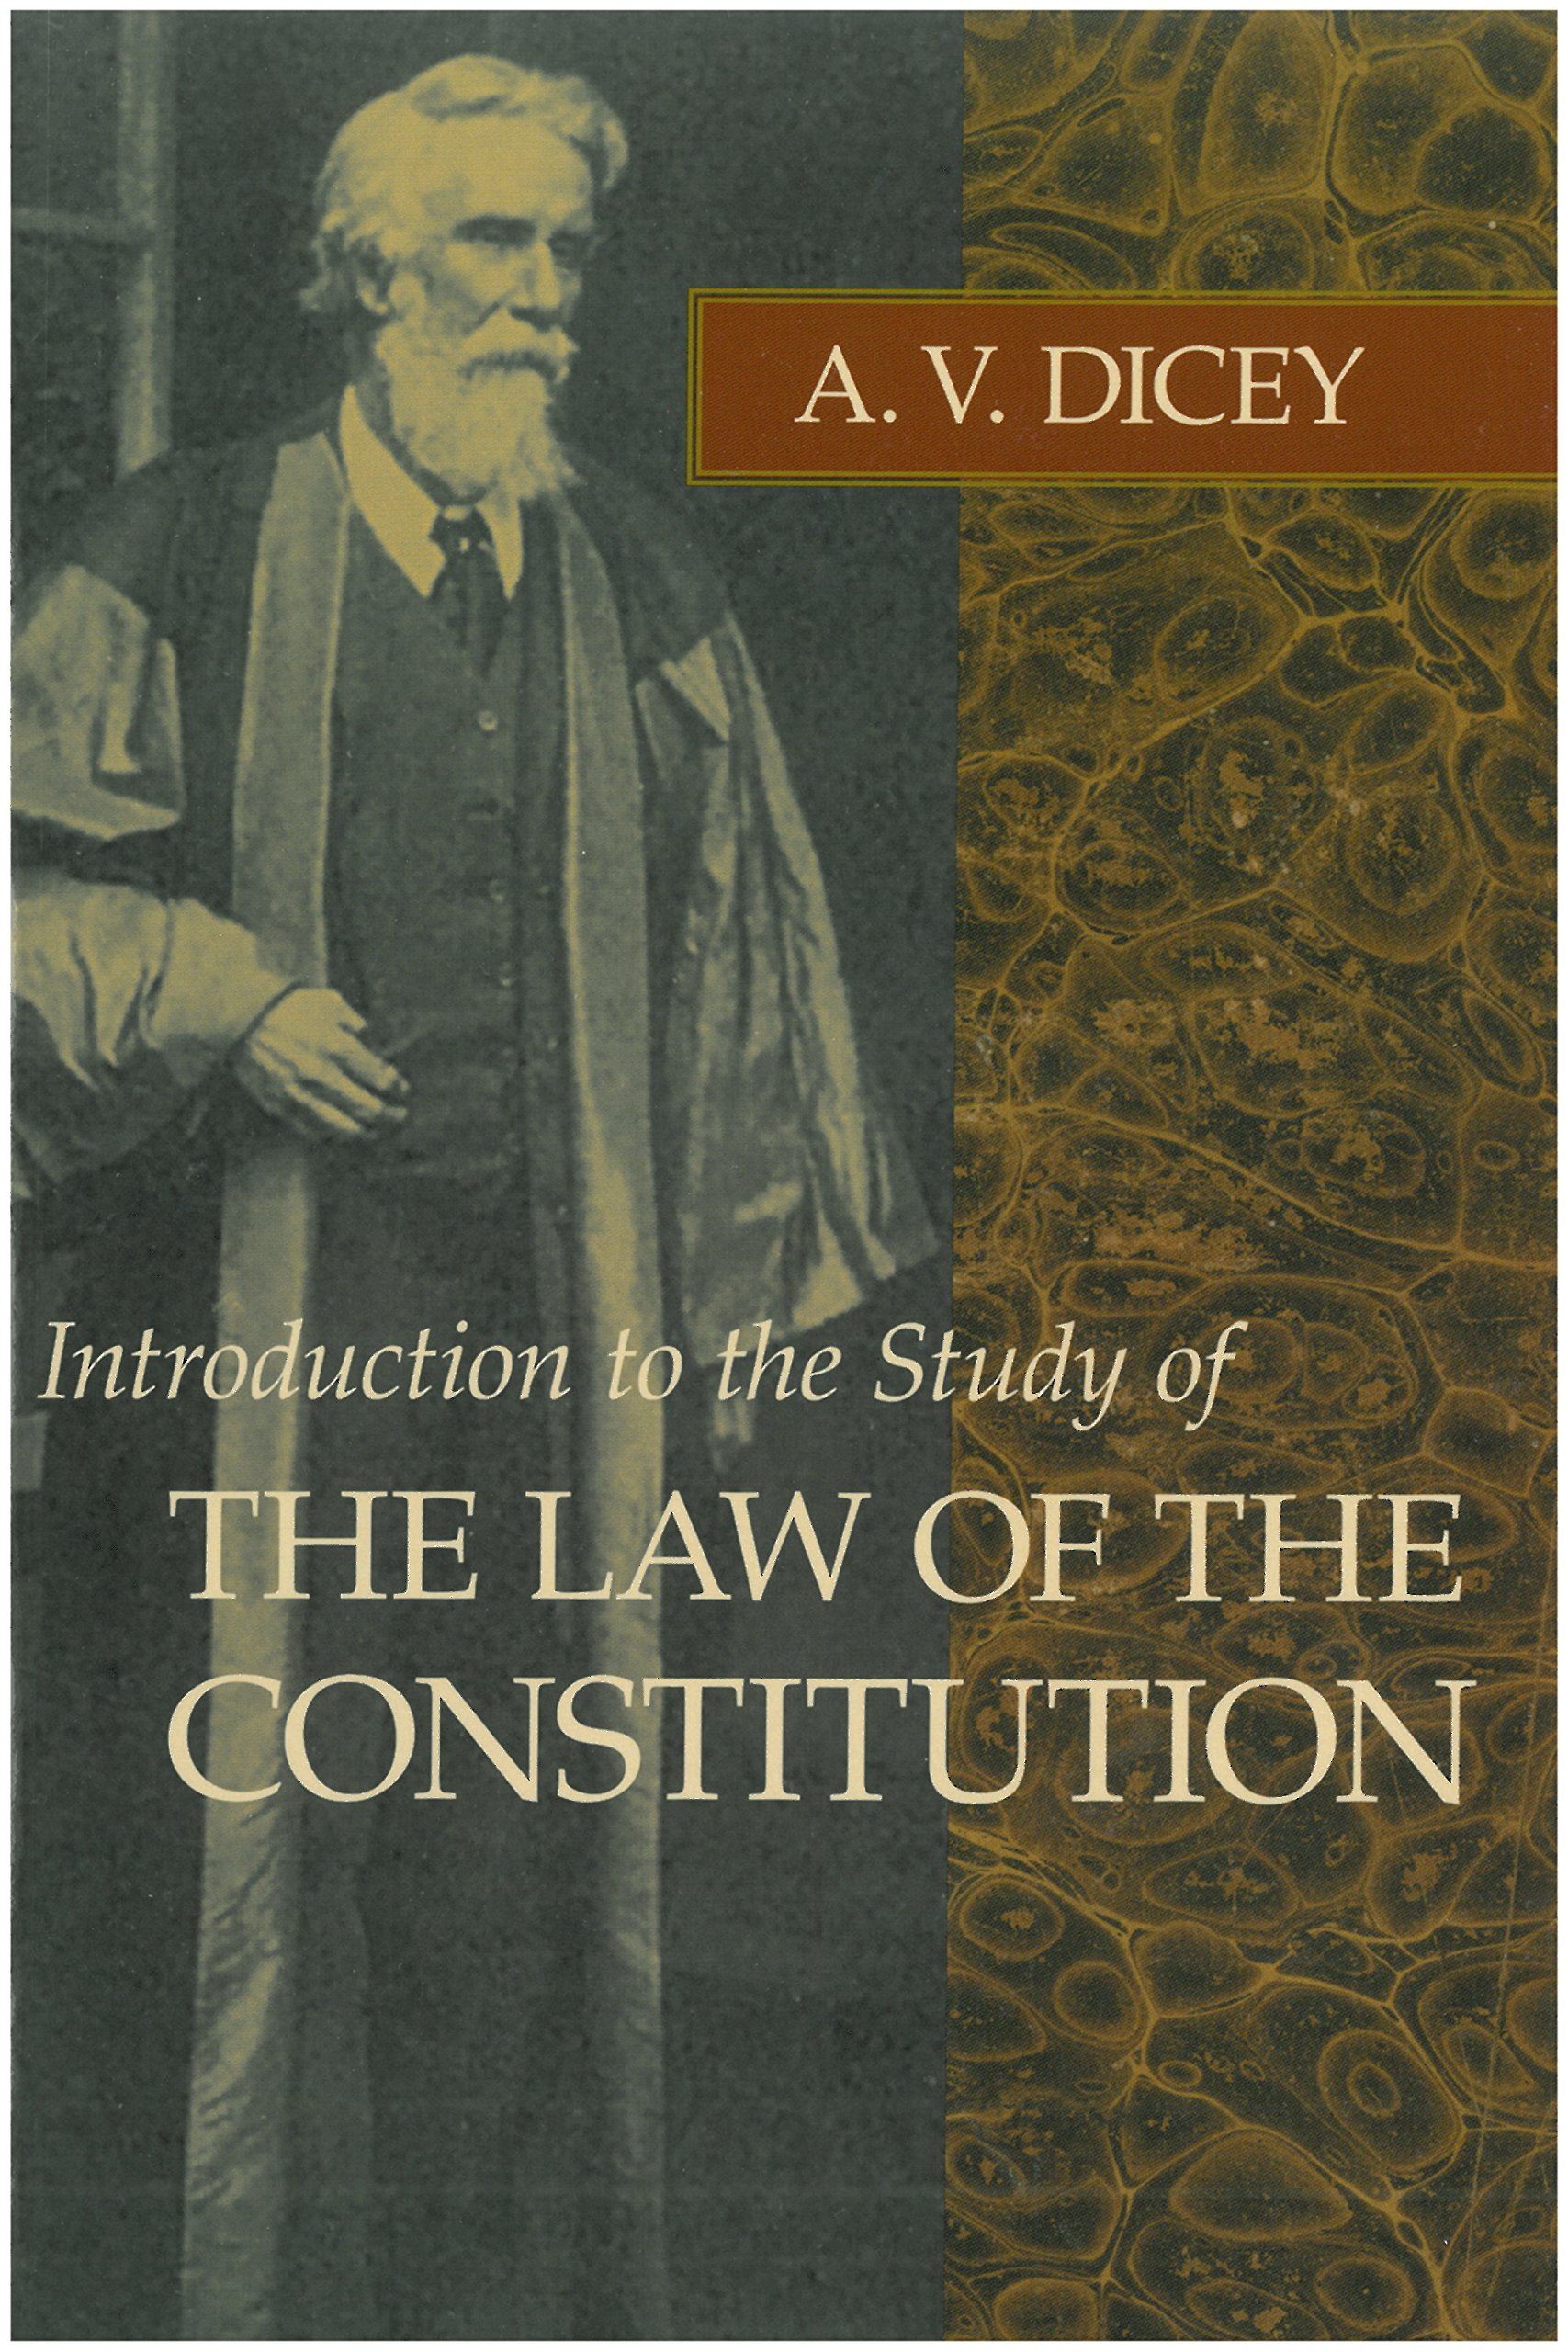 Introduction to the Study of the Law of the Constitution: Amazon.co.uk:  Albert V. Dicey, Roger E. Michener: 9780865970038: Books